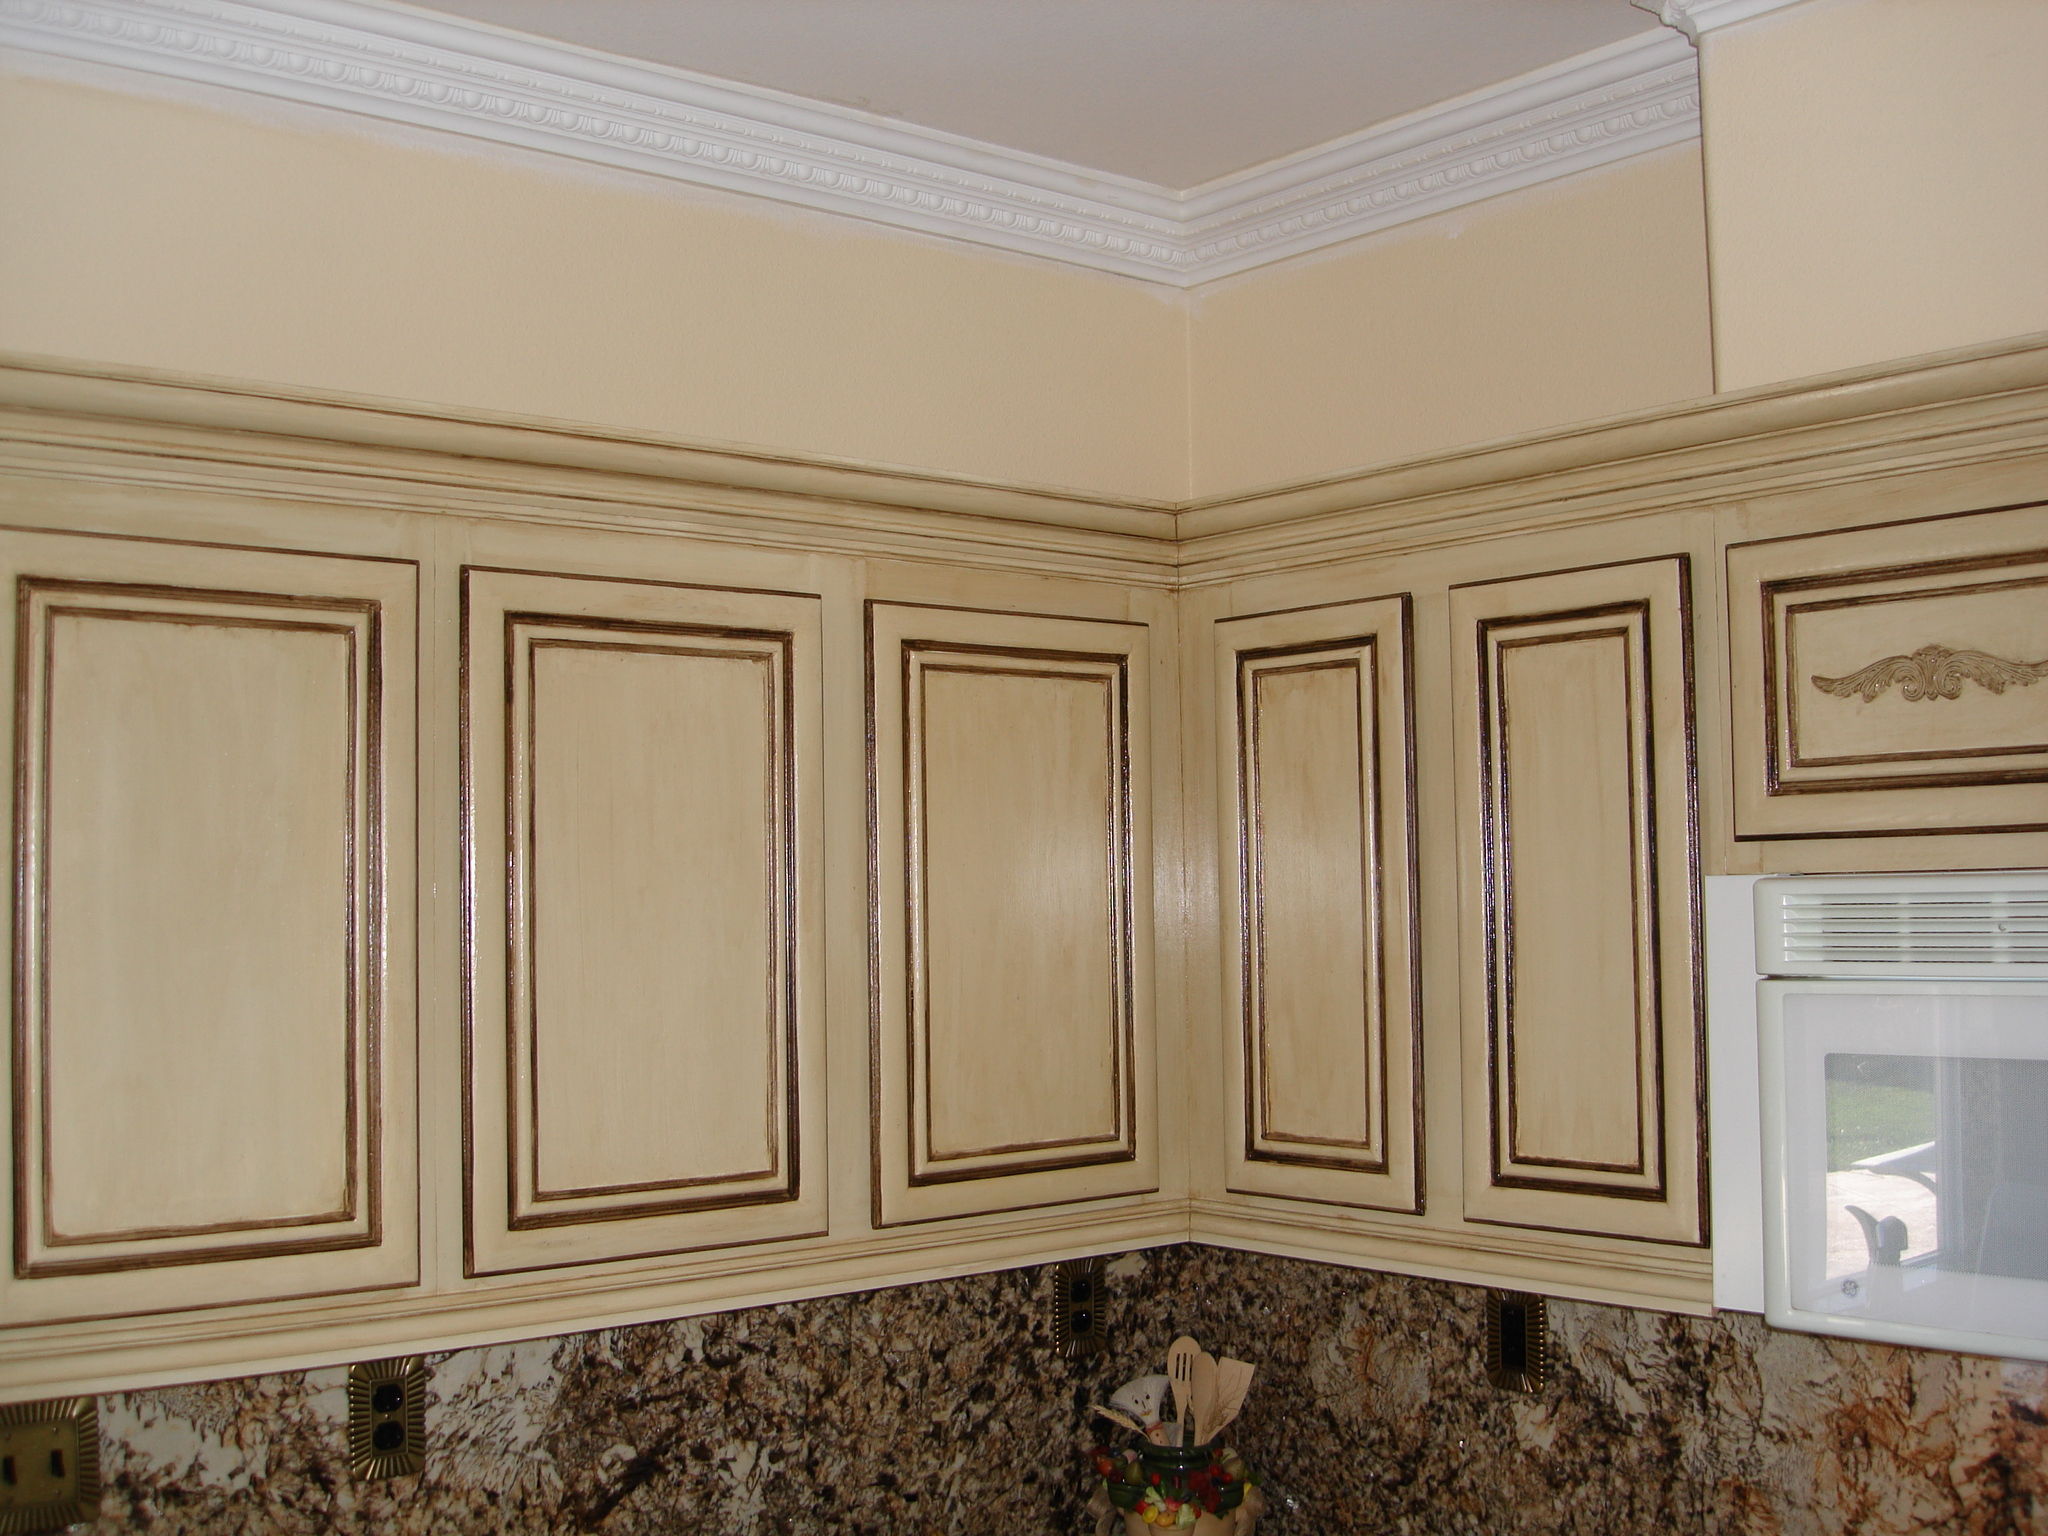 Teastained_kitchen_cabinets2.jpg